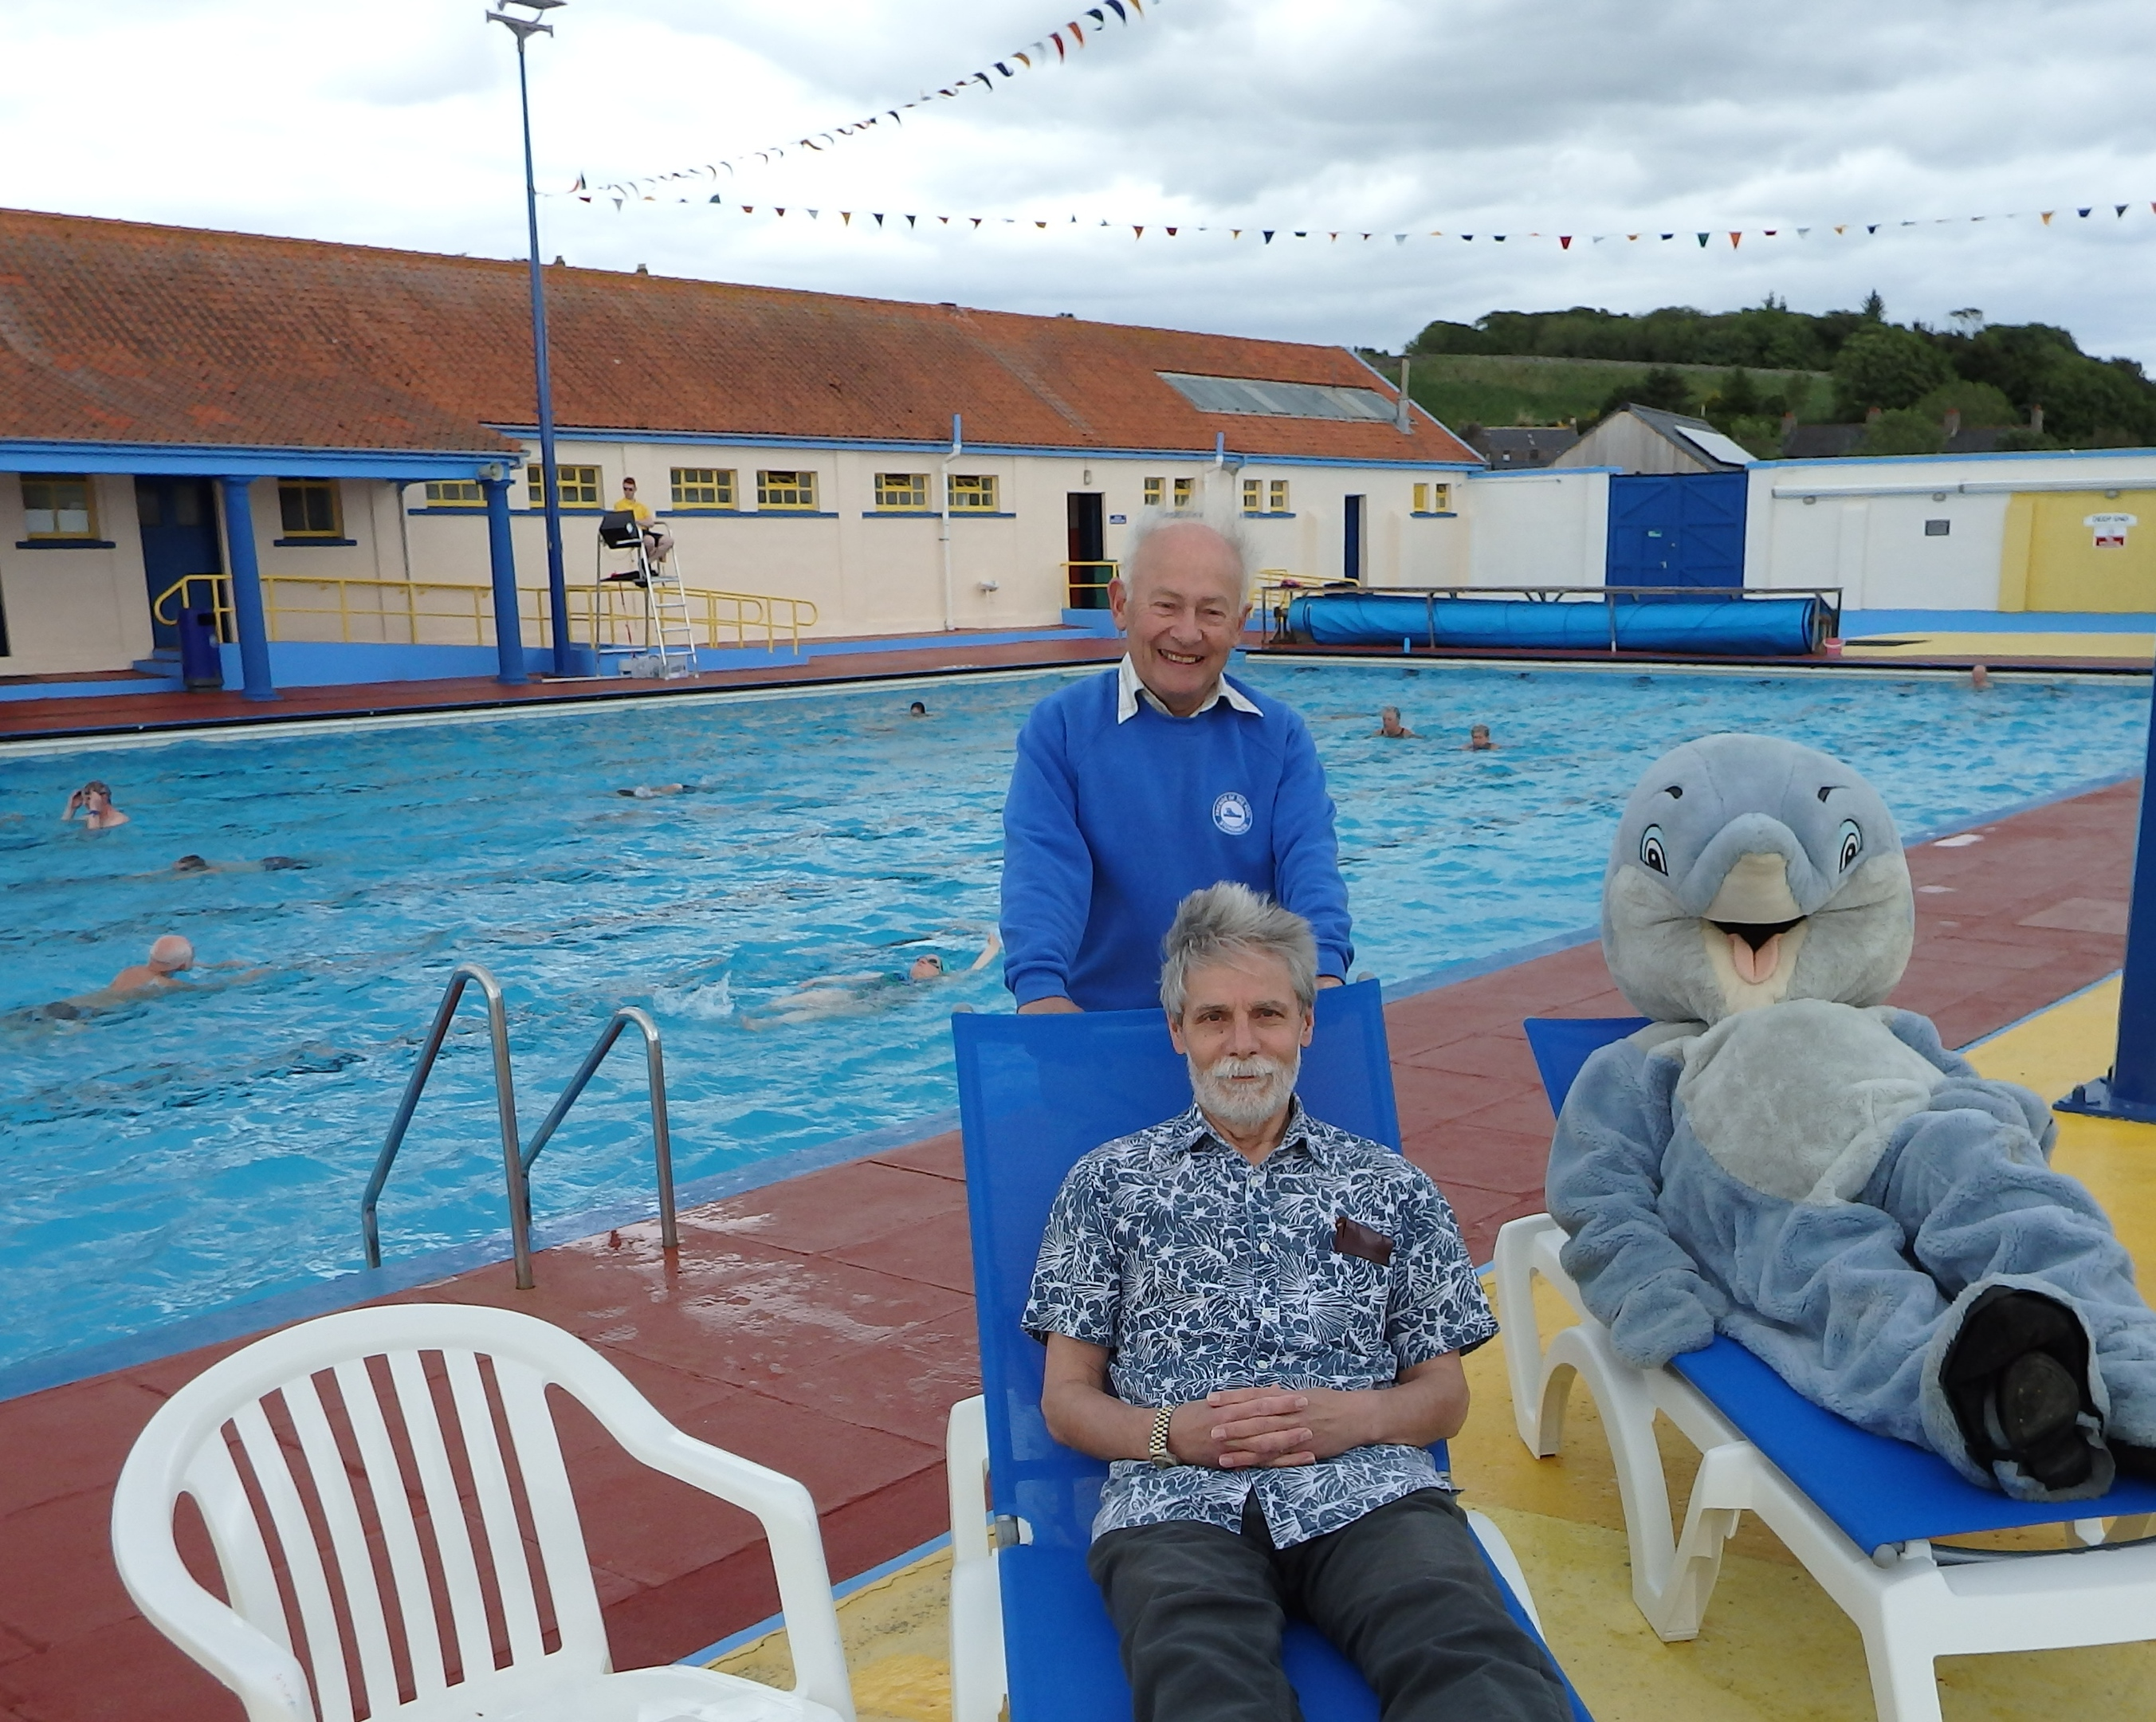 Friends of Stonehaven Pool, David Culshaw, and Douglas Samways